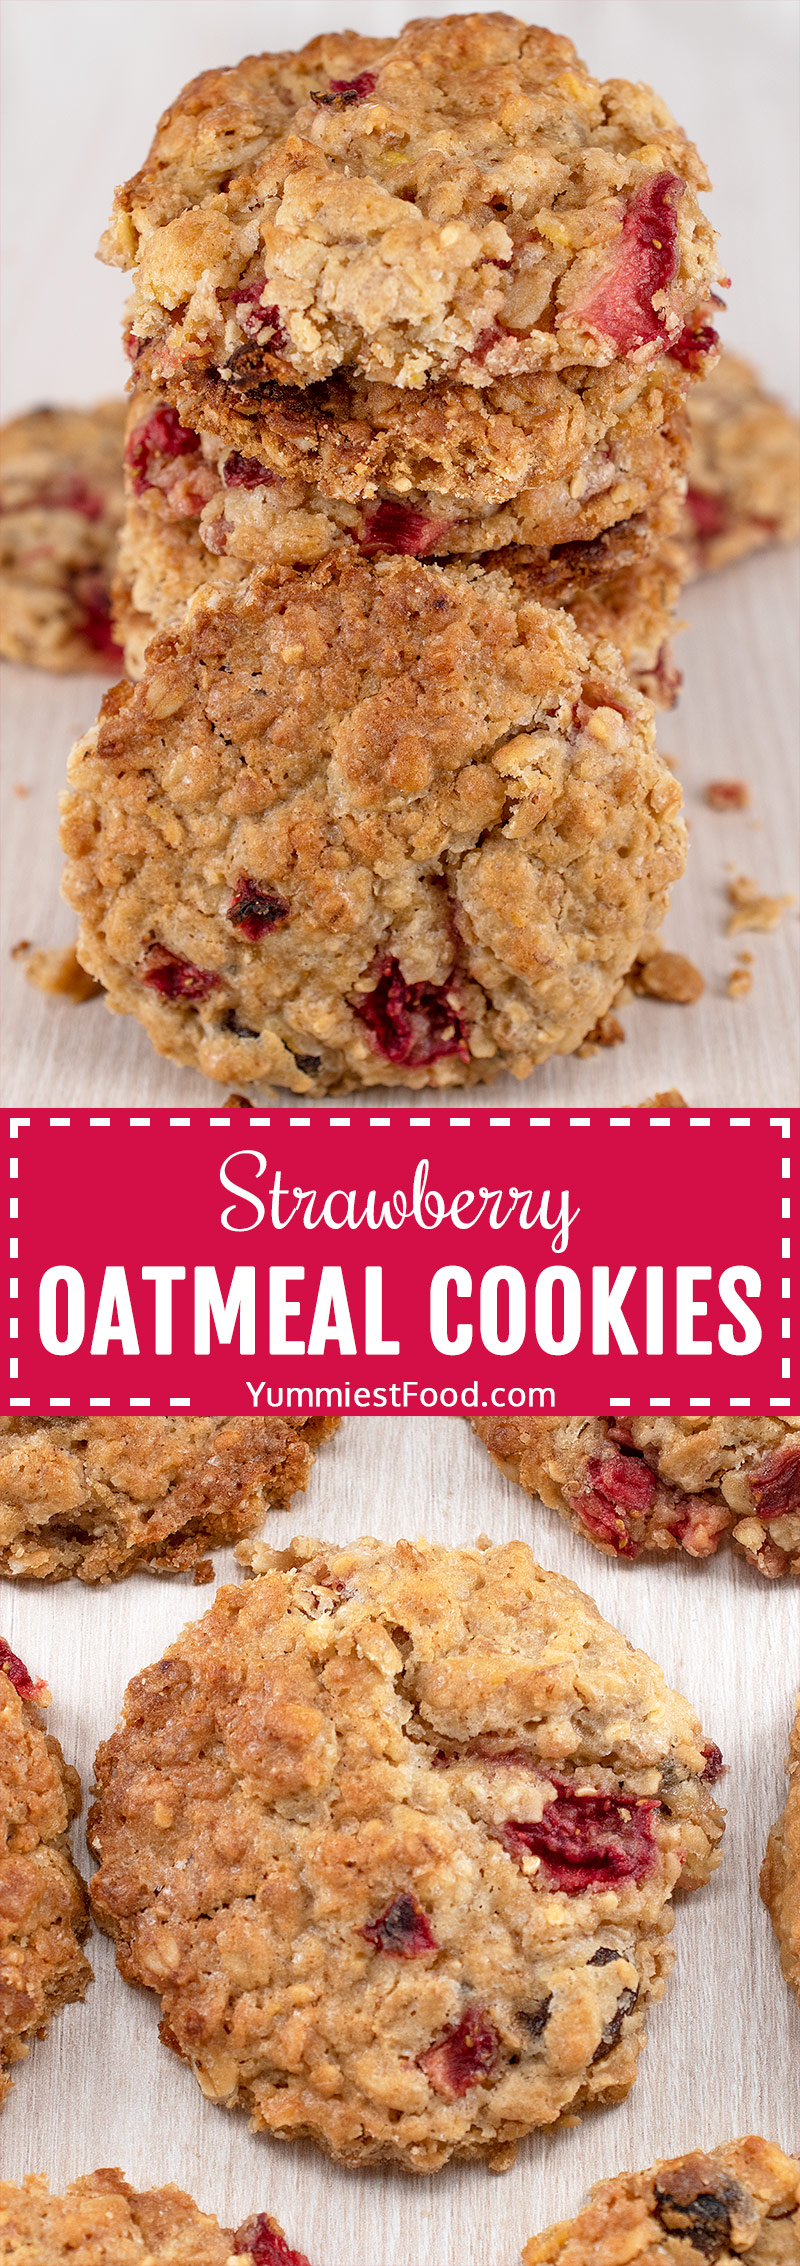 Chewy Strawberry Oatmeal Cookies - suitable for vegans and those who enjoy clean eating